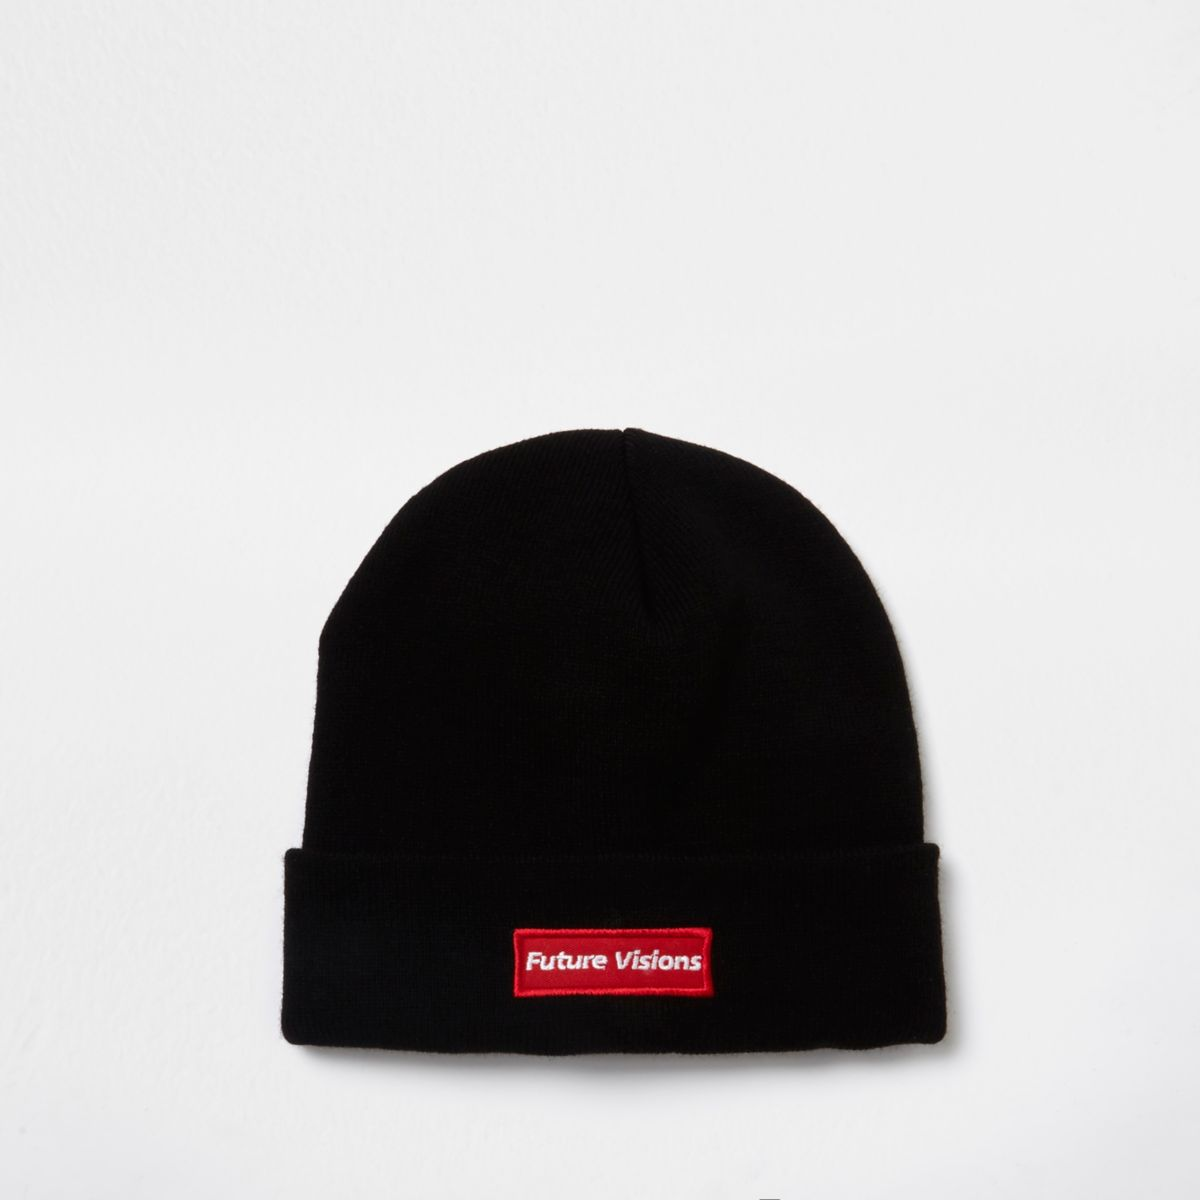 Black 'future visions' embroidered beanie hat